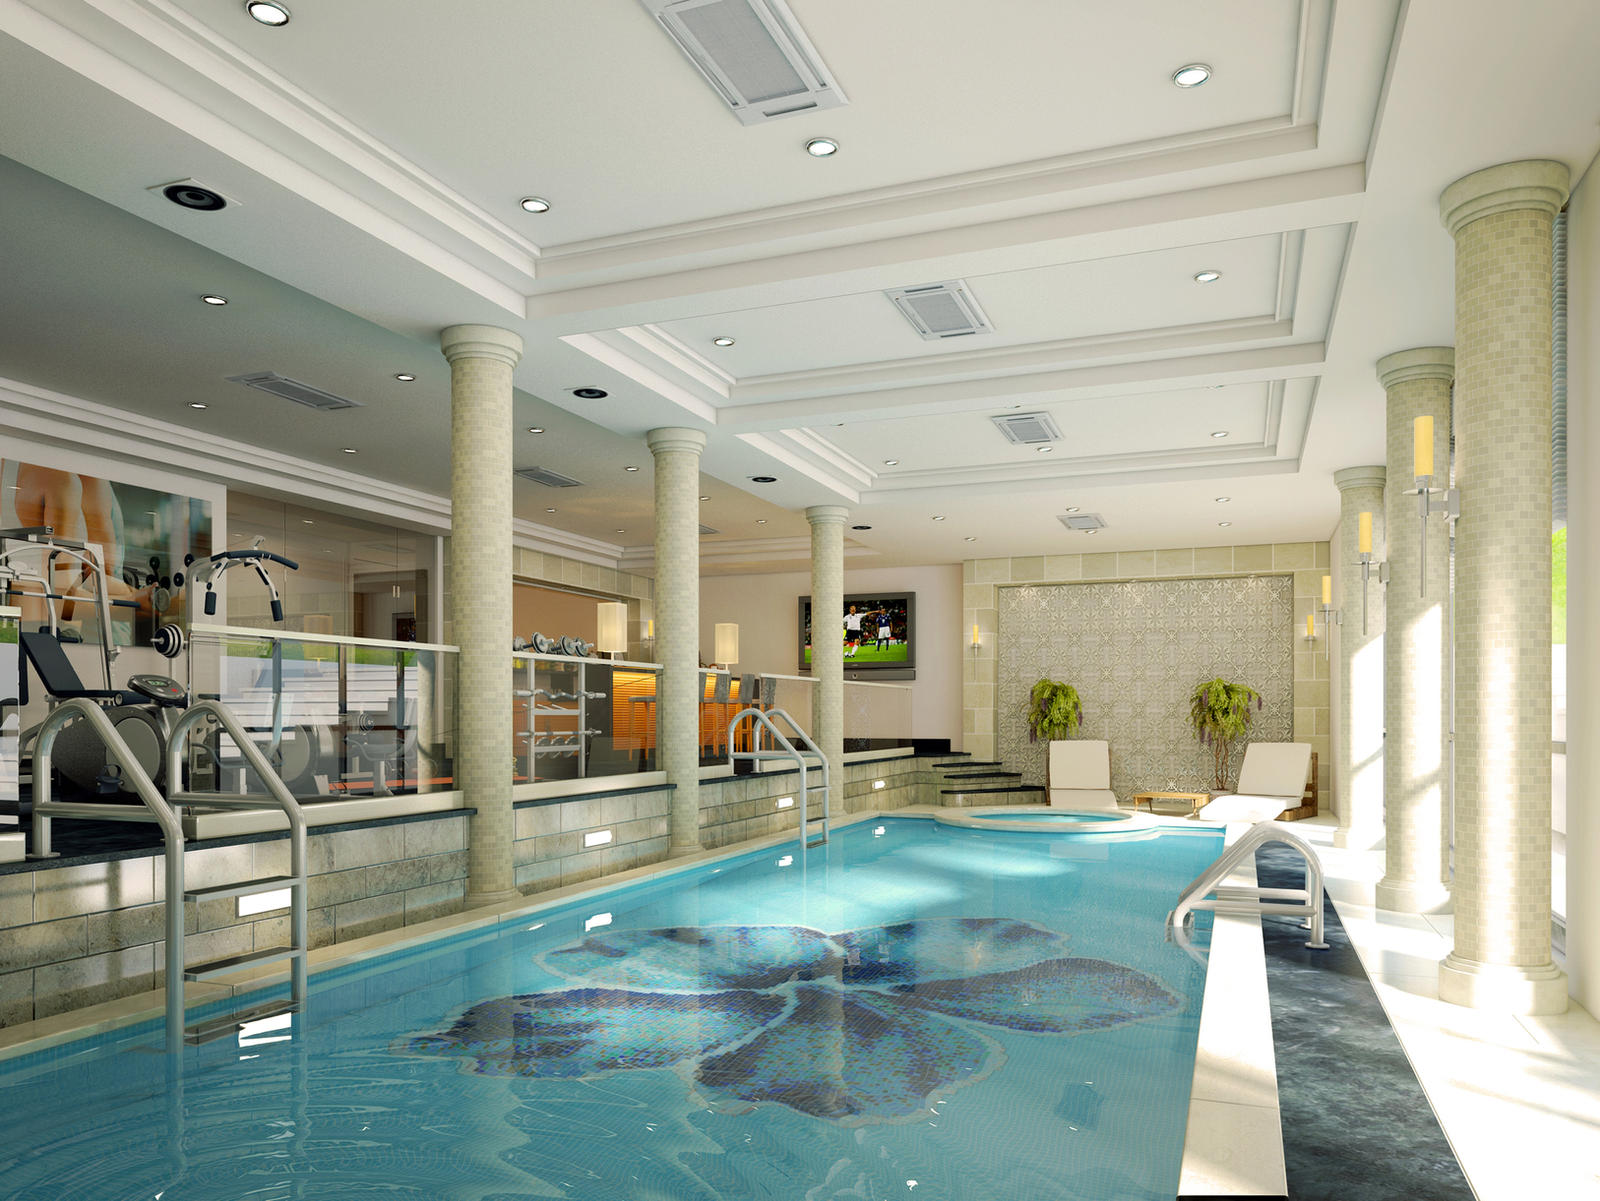 pool in basement